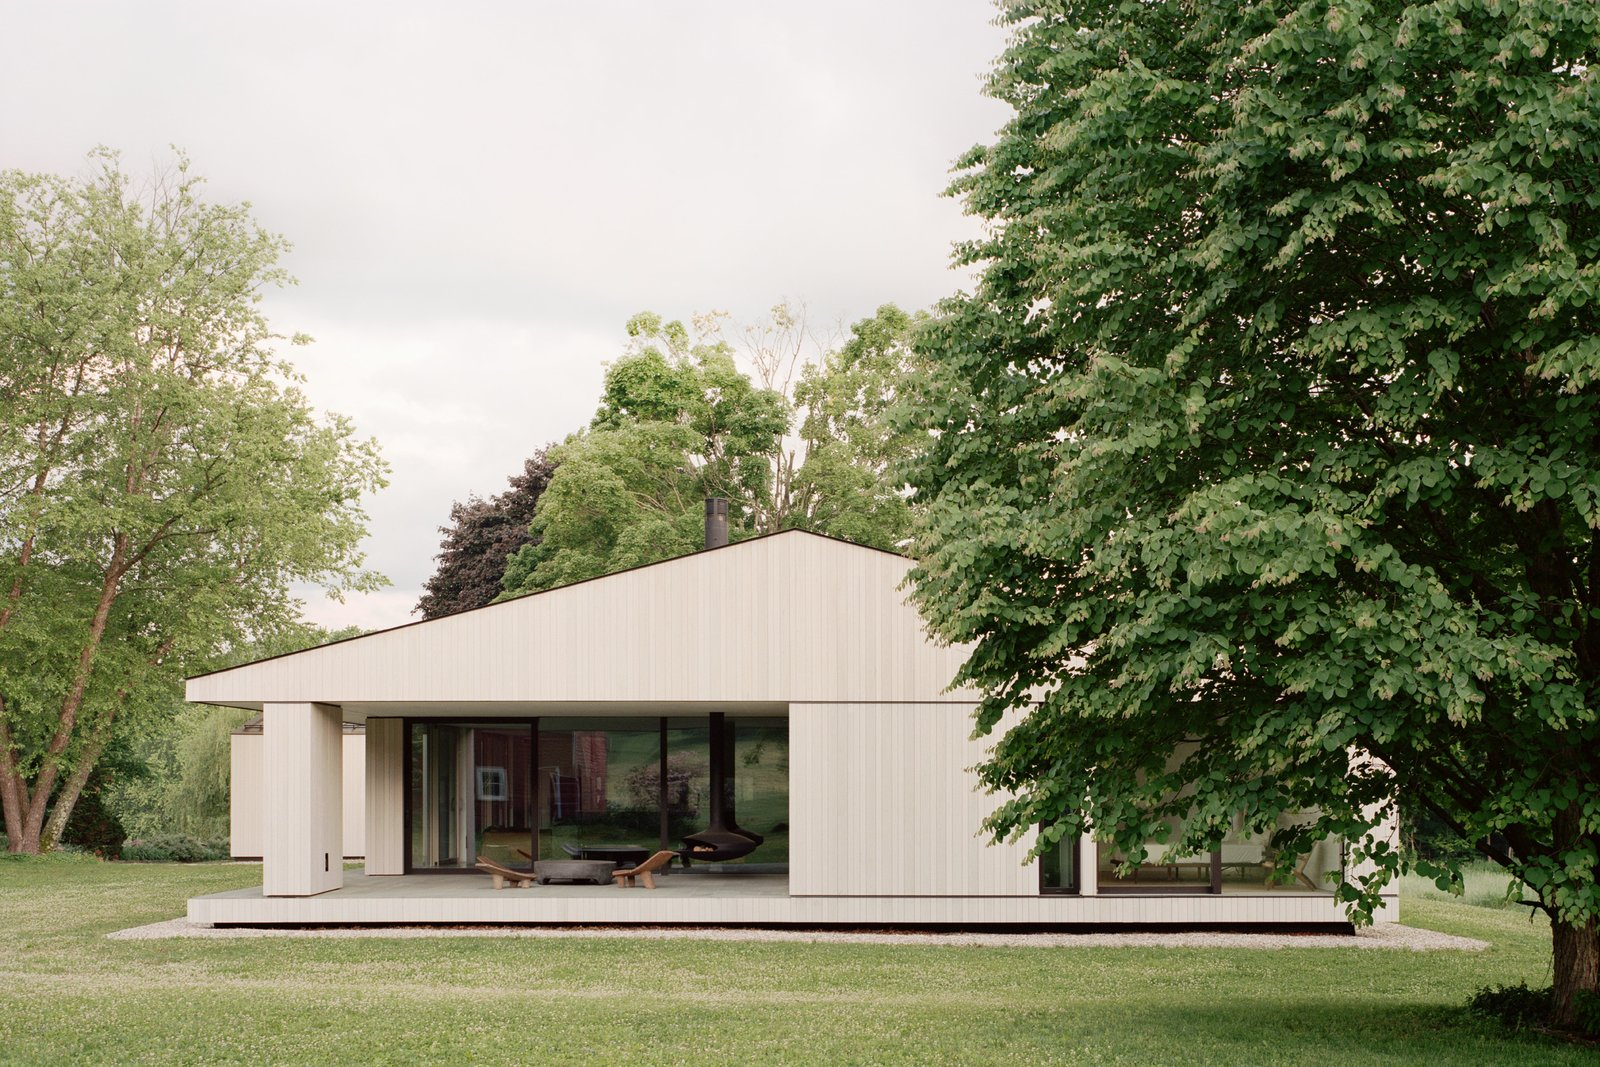 Sheffield residence by Vincent Appel / Of Possible exterior side view with terrace